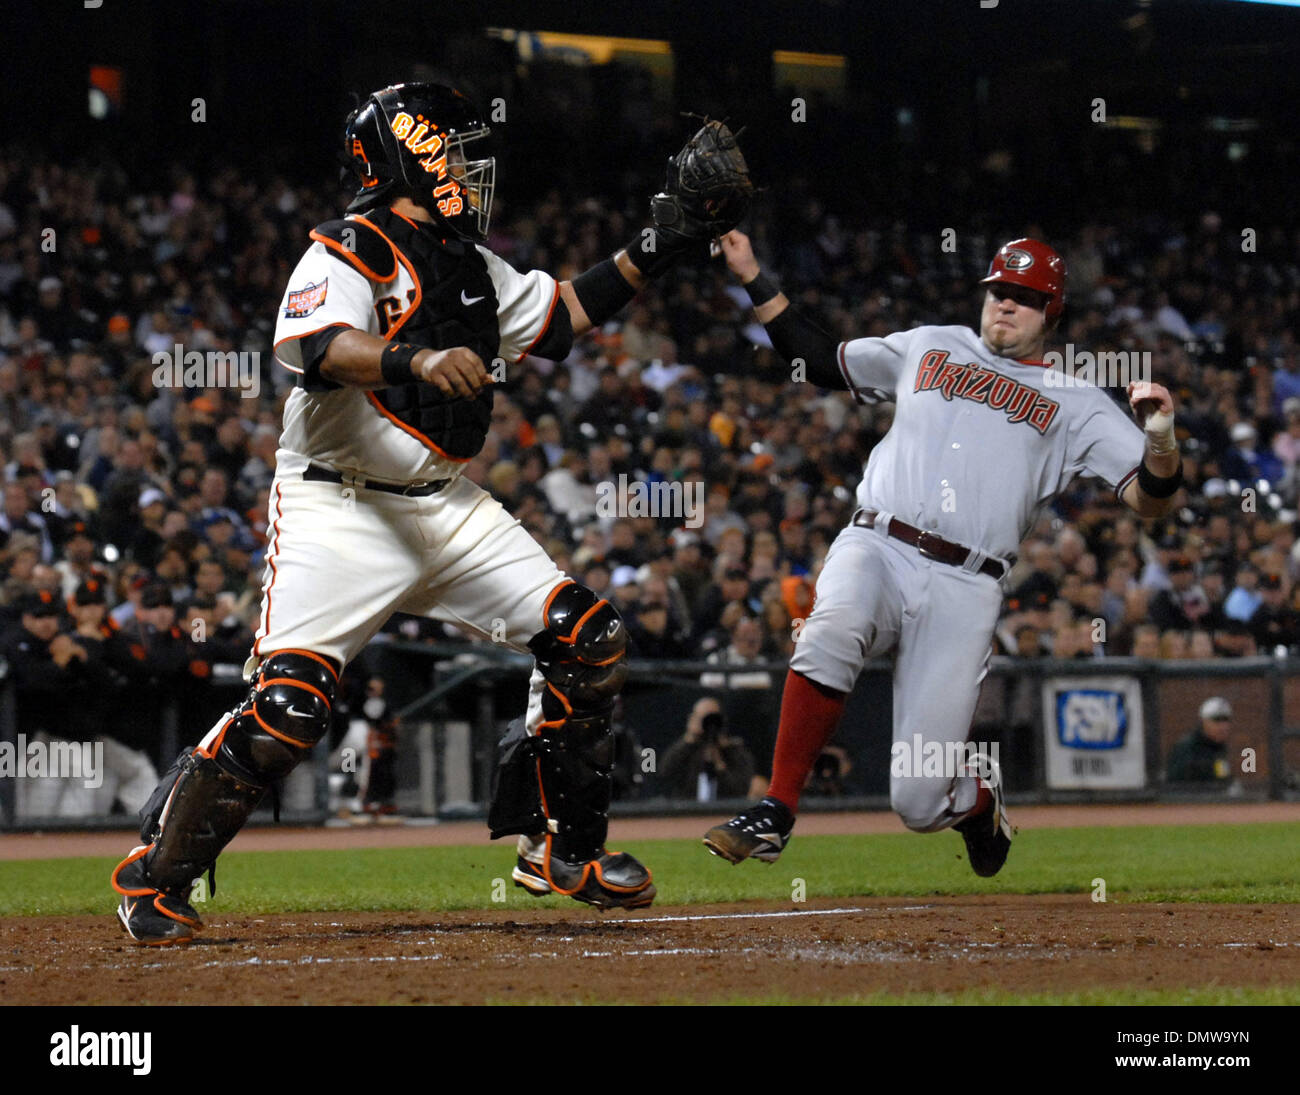 Arizona Diamondbacks Chris Snyder is forced out at home plate by Giants catcher Bengie Molina in the 3rd inning off a hit by Brandon Webb with the bases loaded in their  game Wednesday night, Sept 12, 2007, at AT&T Park in San Francisco Calif. (Dan Rosenstrauch/Contra Costa Times/ZUMA Press) - Stock Image